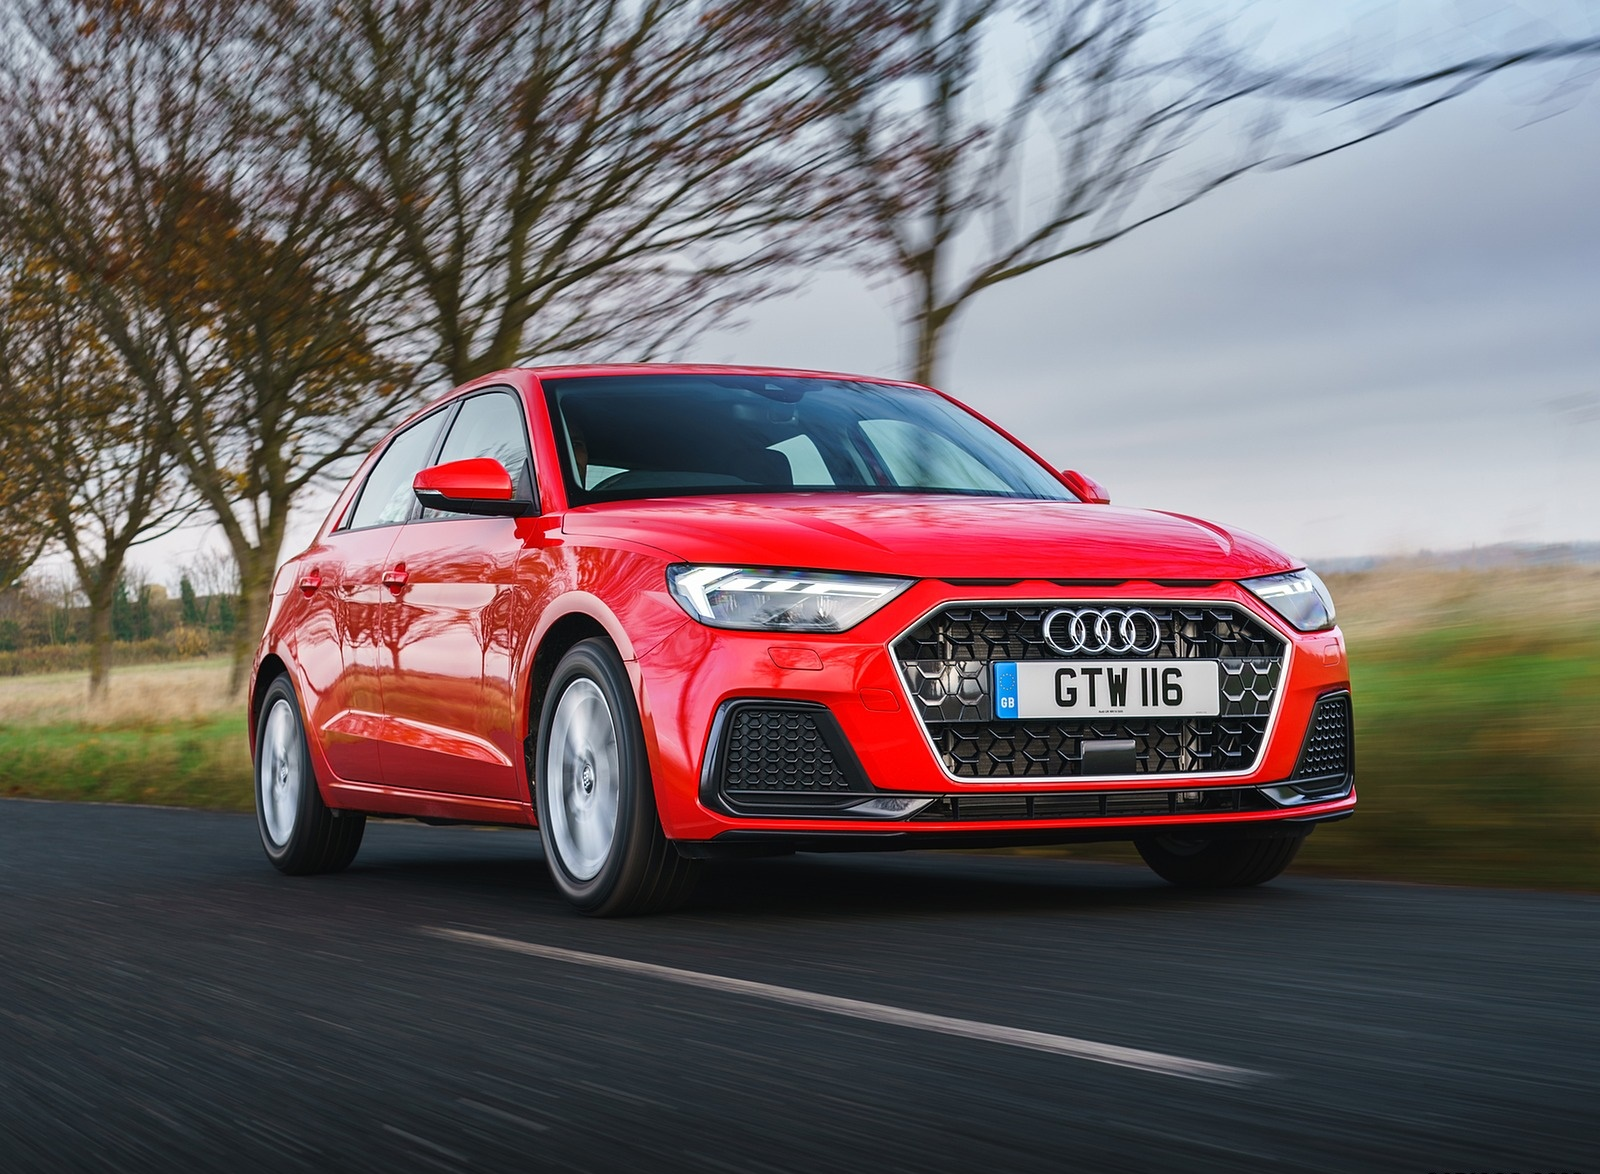 2019 Audi A1 Sportback 30 TFSI (UK-Spec) Front Three-Quarter Wallpapers (7)